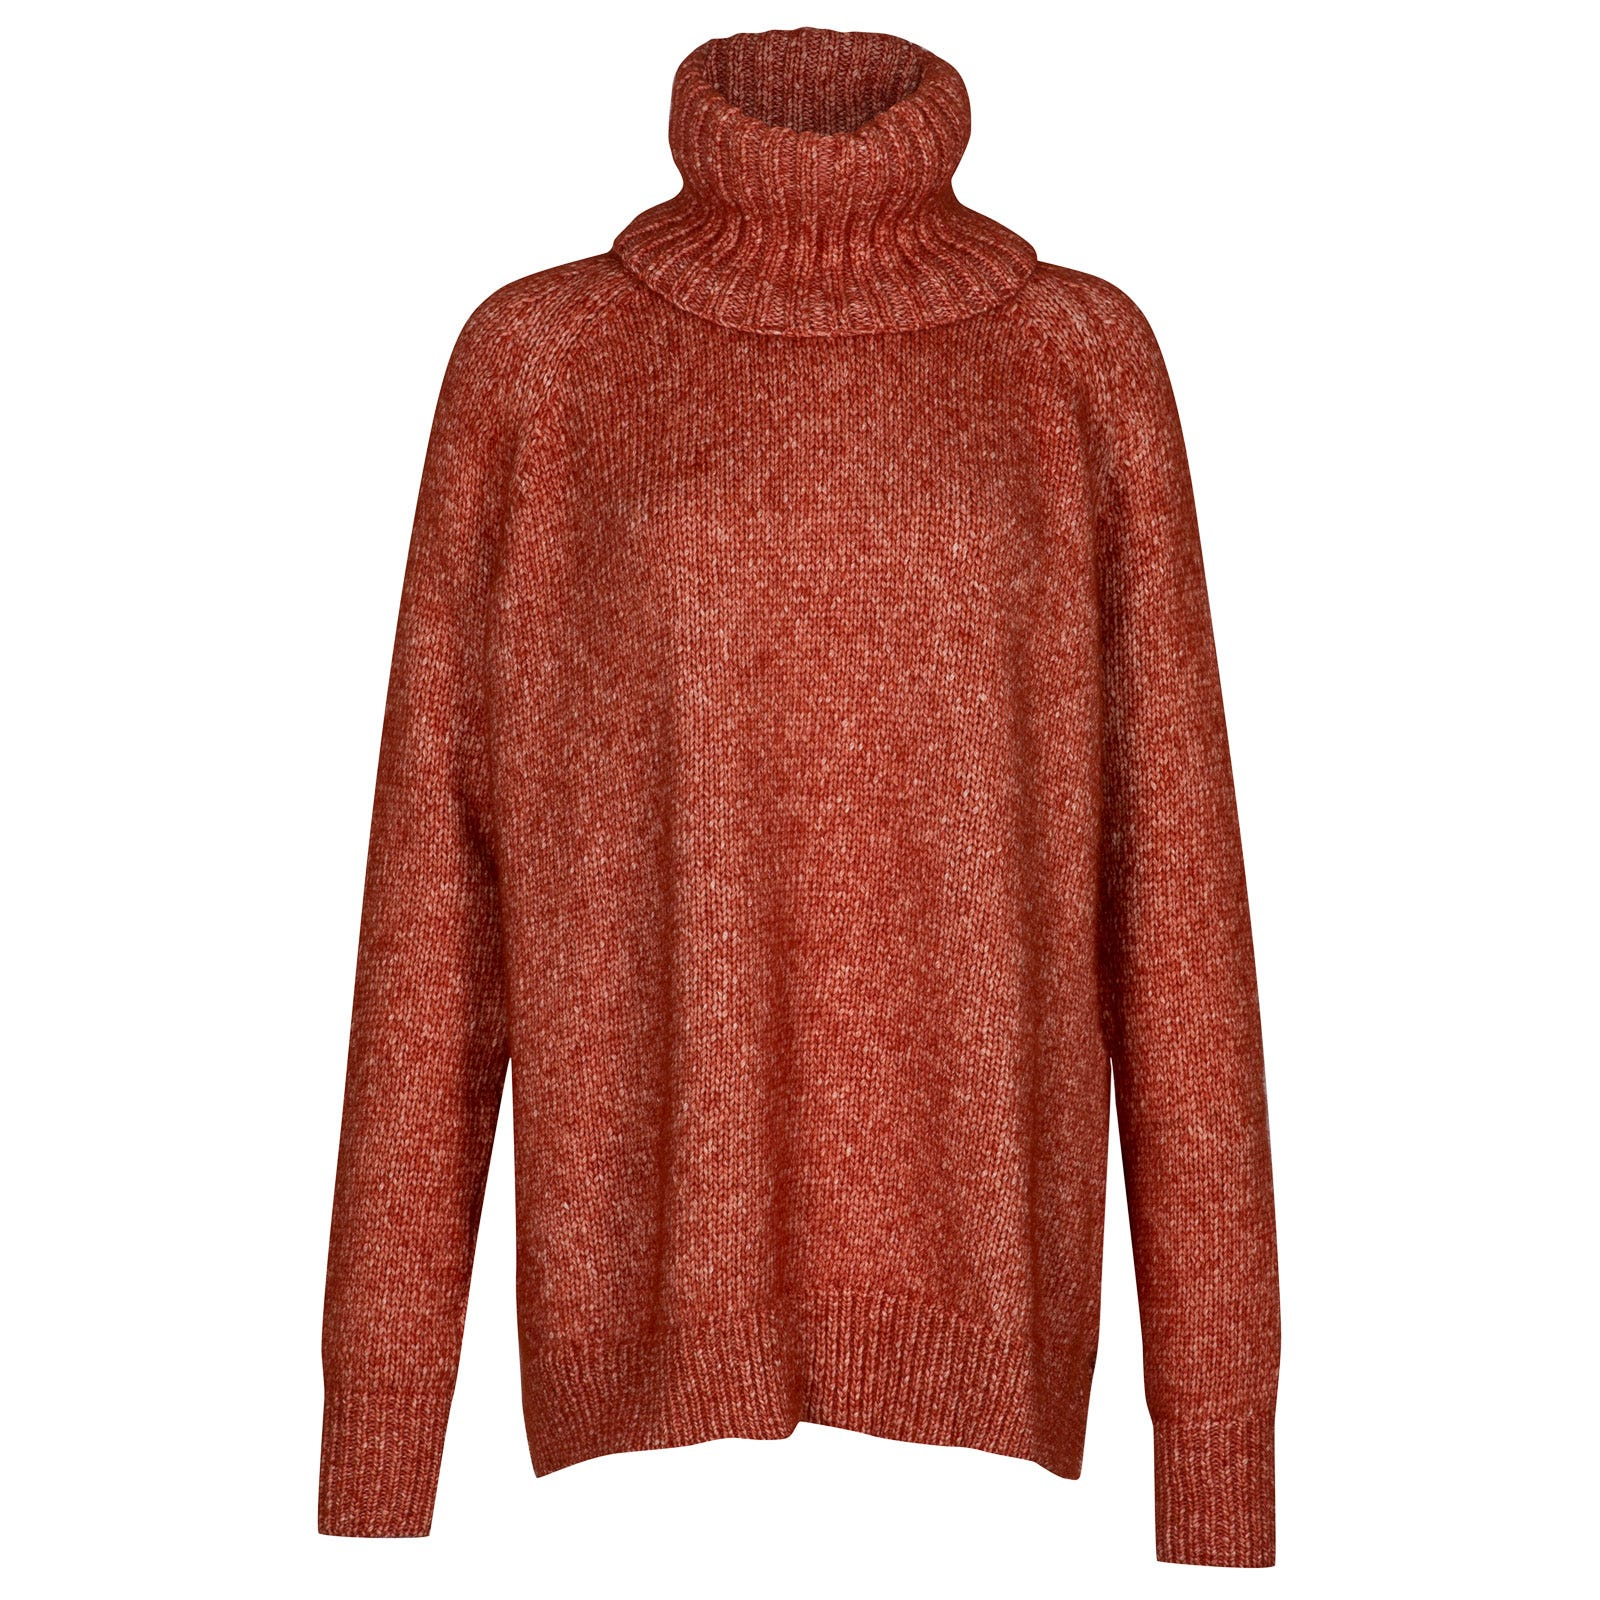 John Smedley Morar Alpaca, Wool & Cotton Sweater in Flare Orange-S